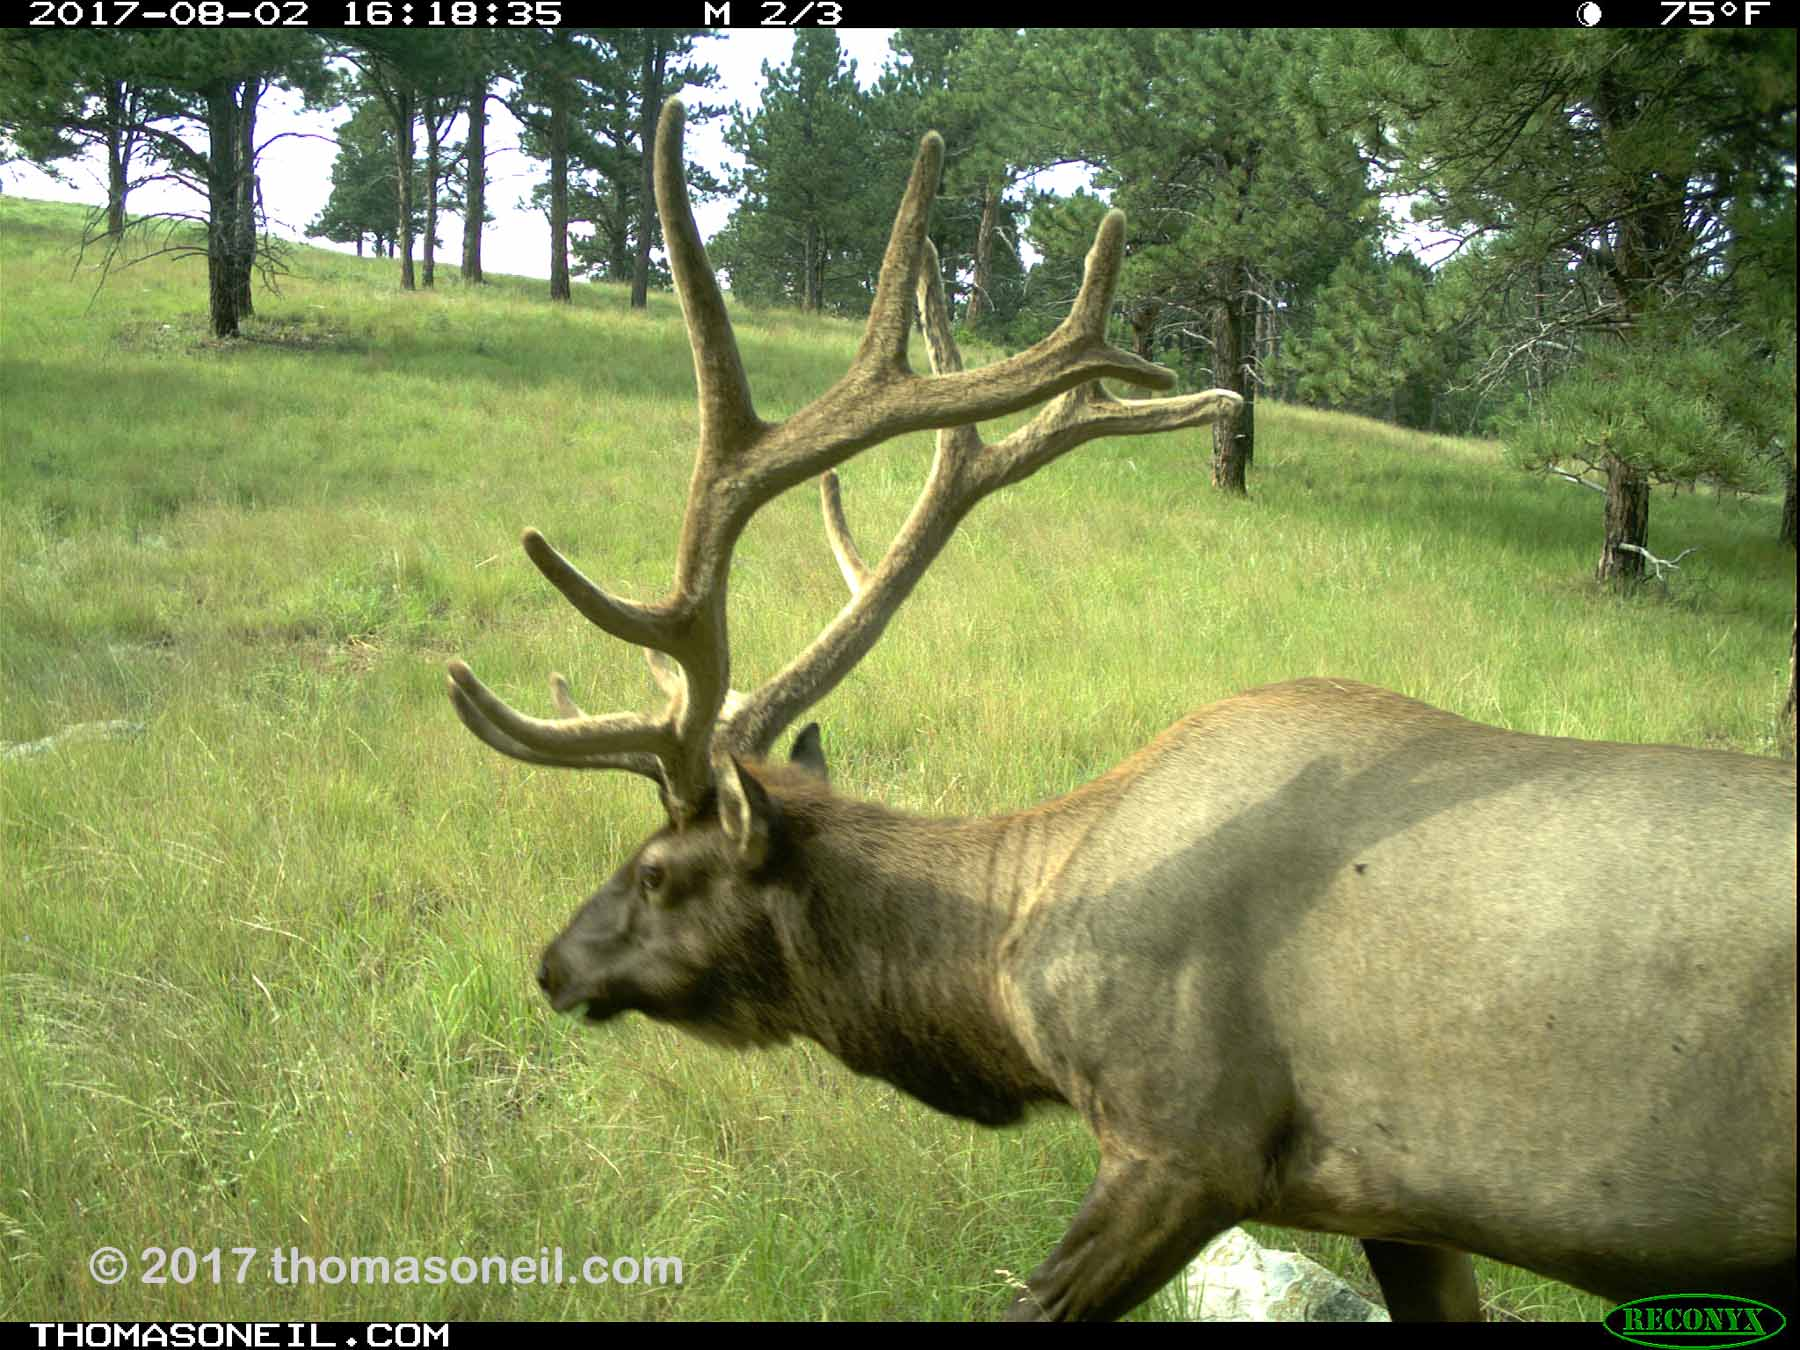 Elk, Aug. 2, 2017.  Click for next photo.